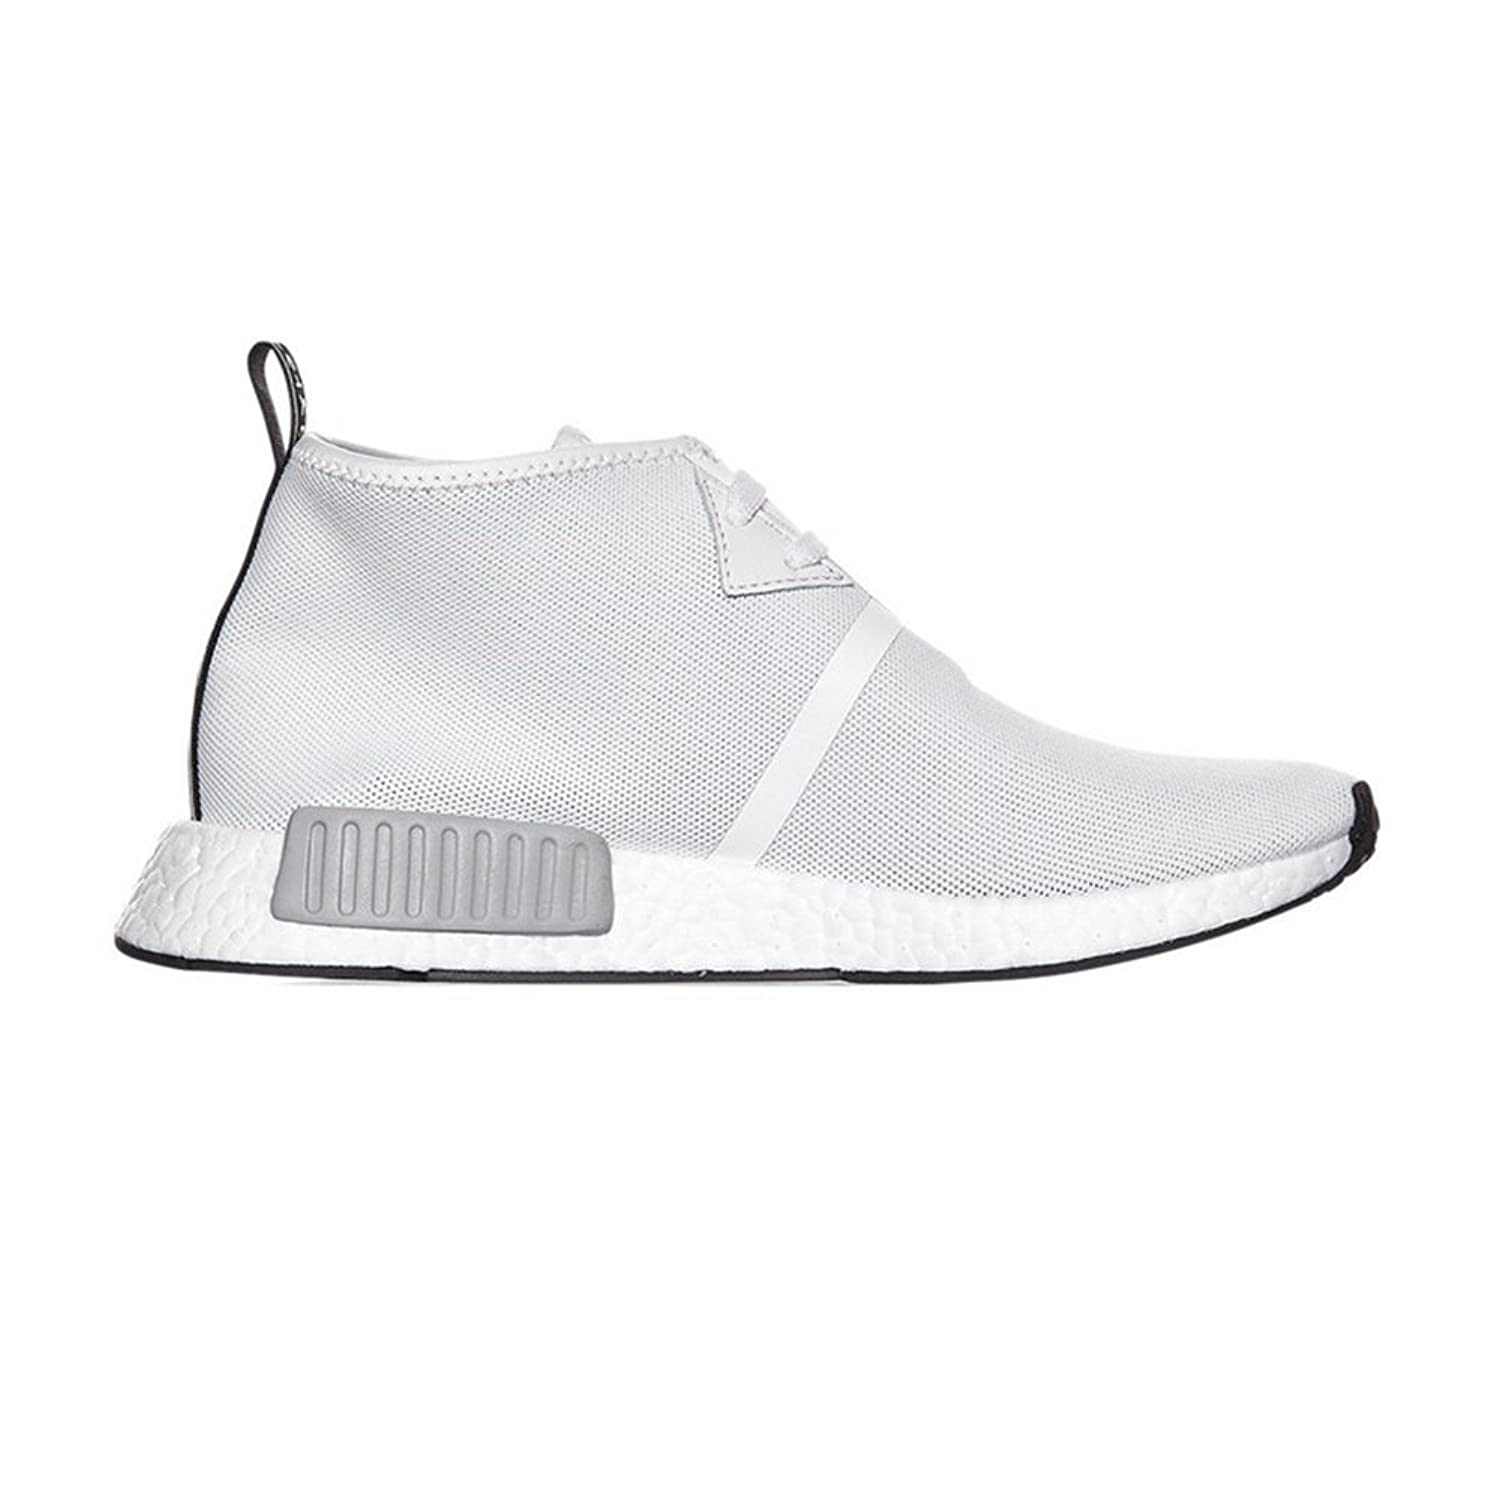 NOOW EAR High Top C1 ChukkaVintage White Sneakers For Mens Womens